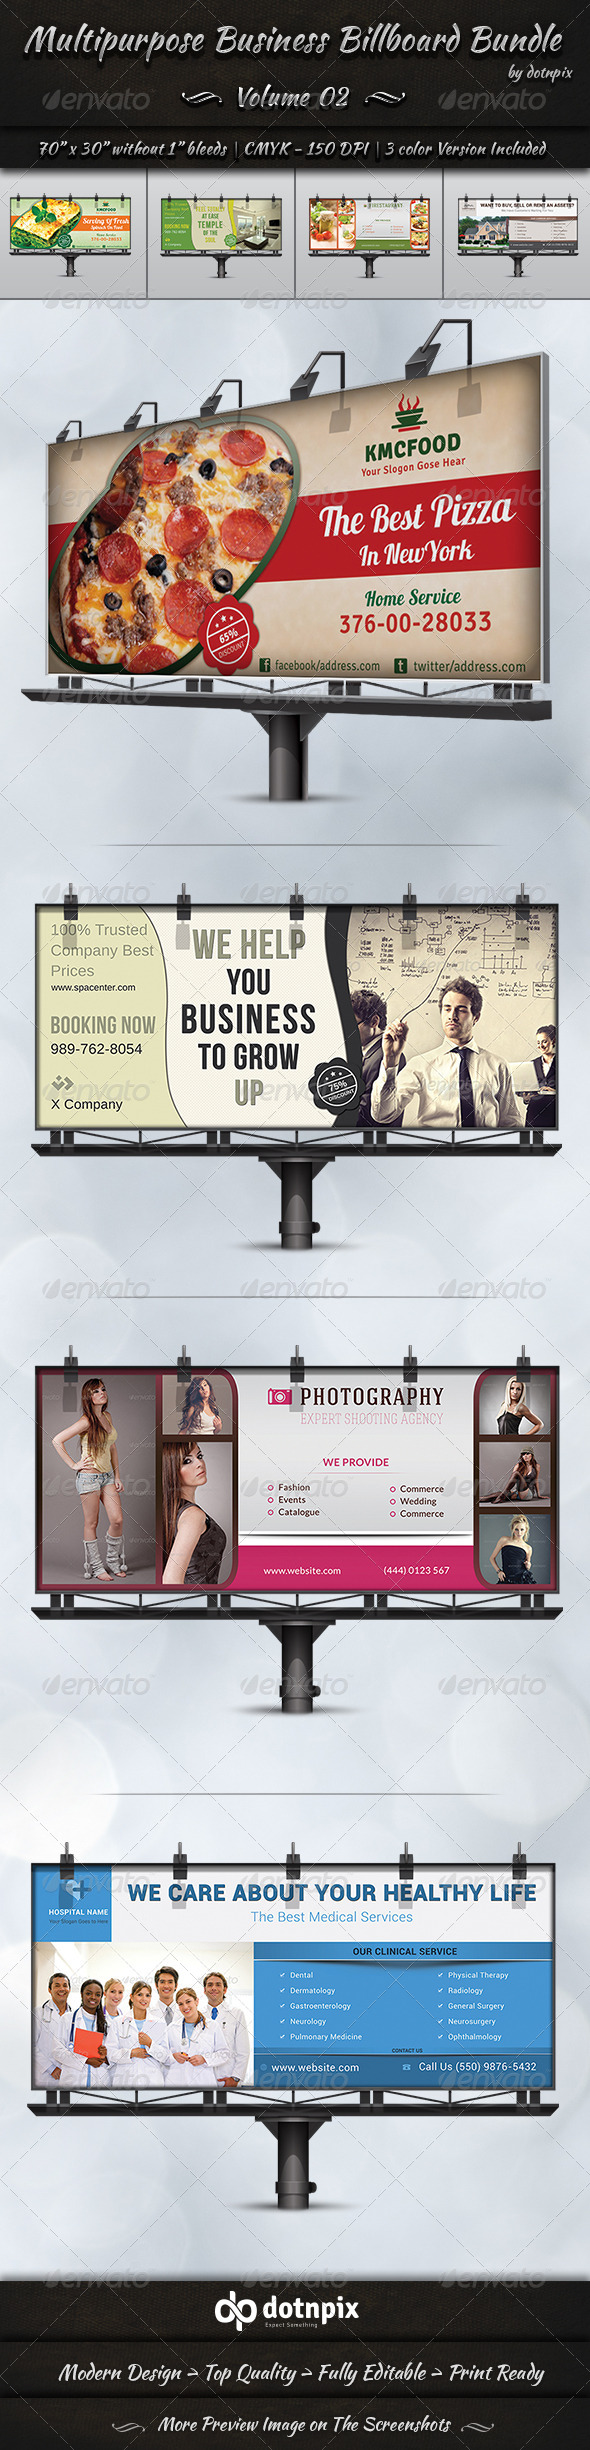 GraphicRiver Multipurpose Business Billboard Bundle Volume 2 8204193